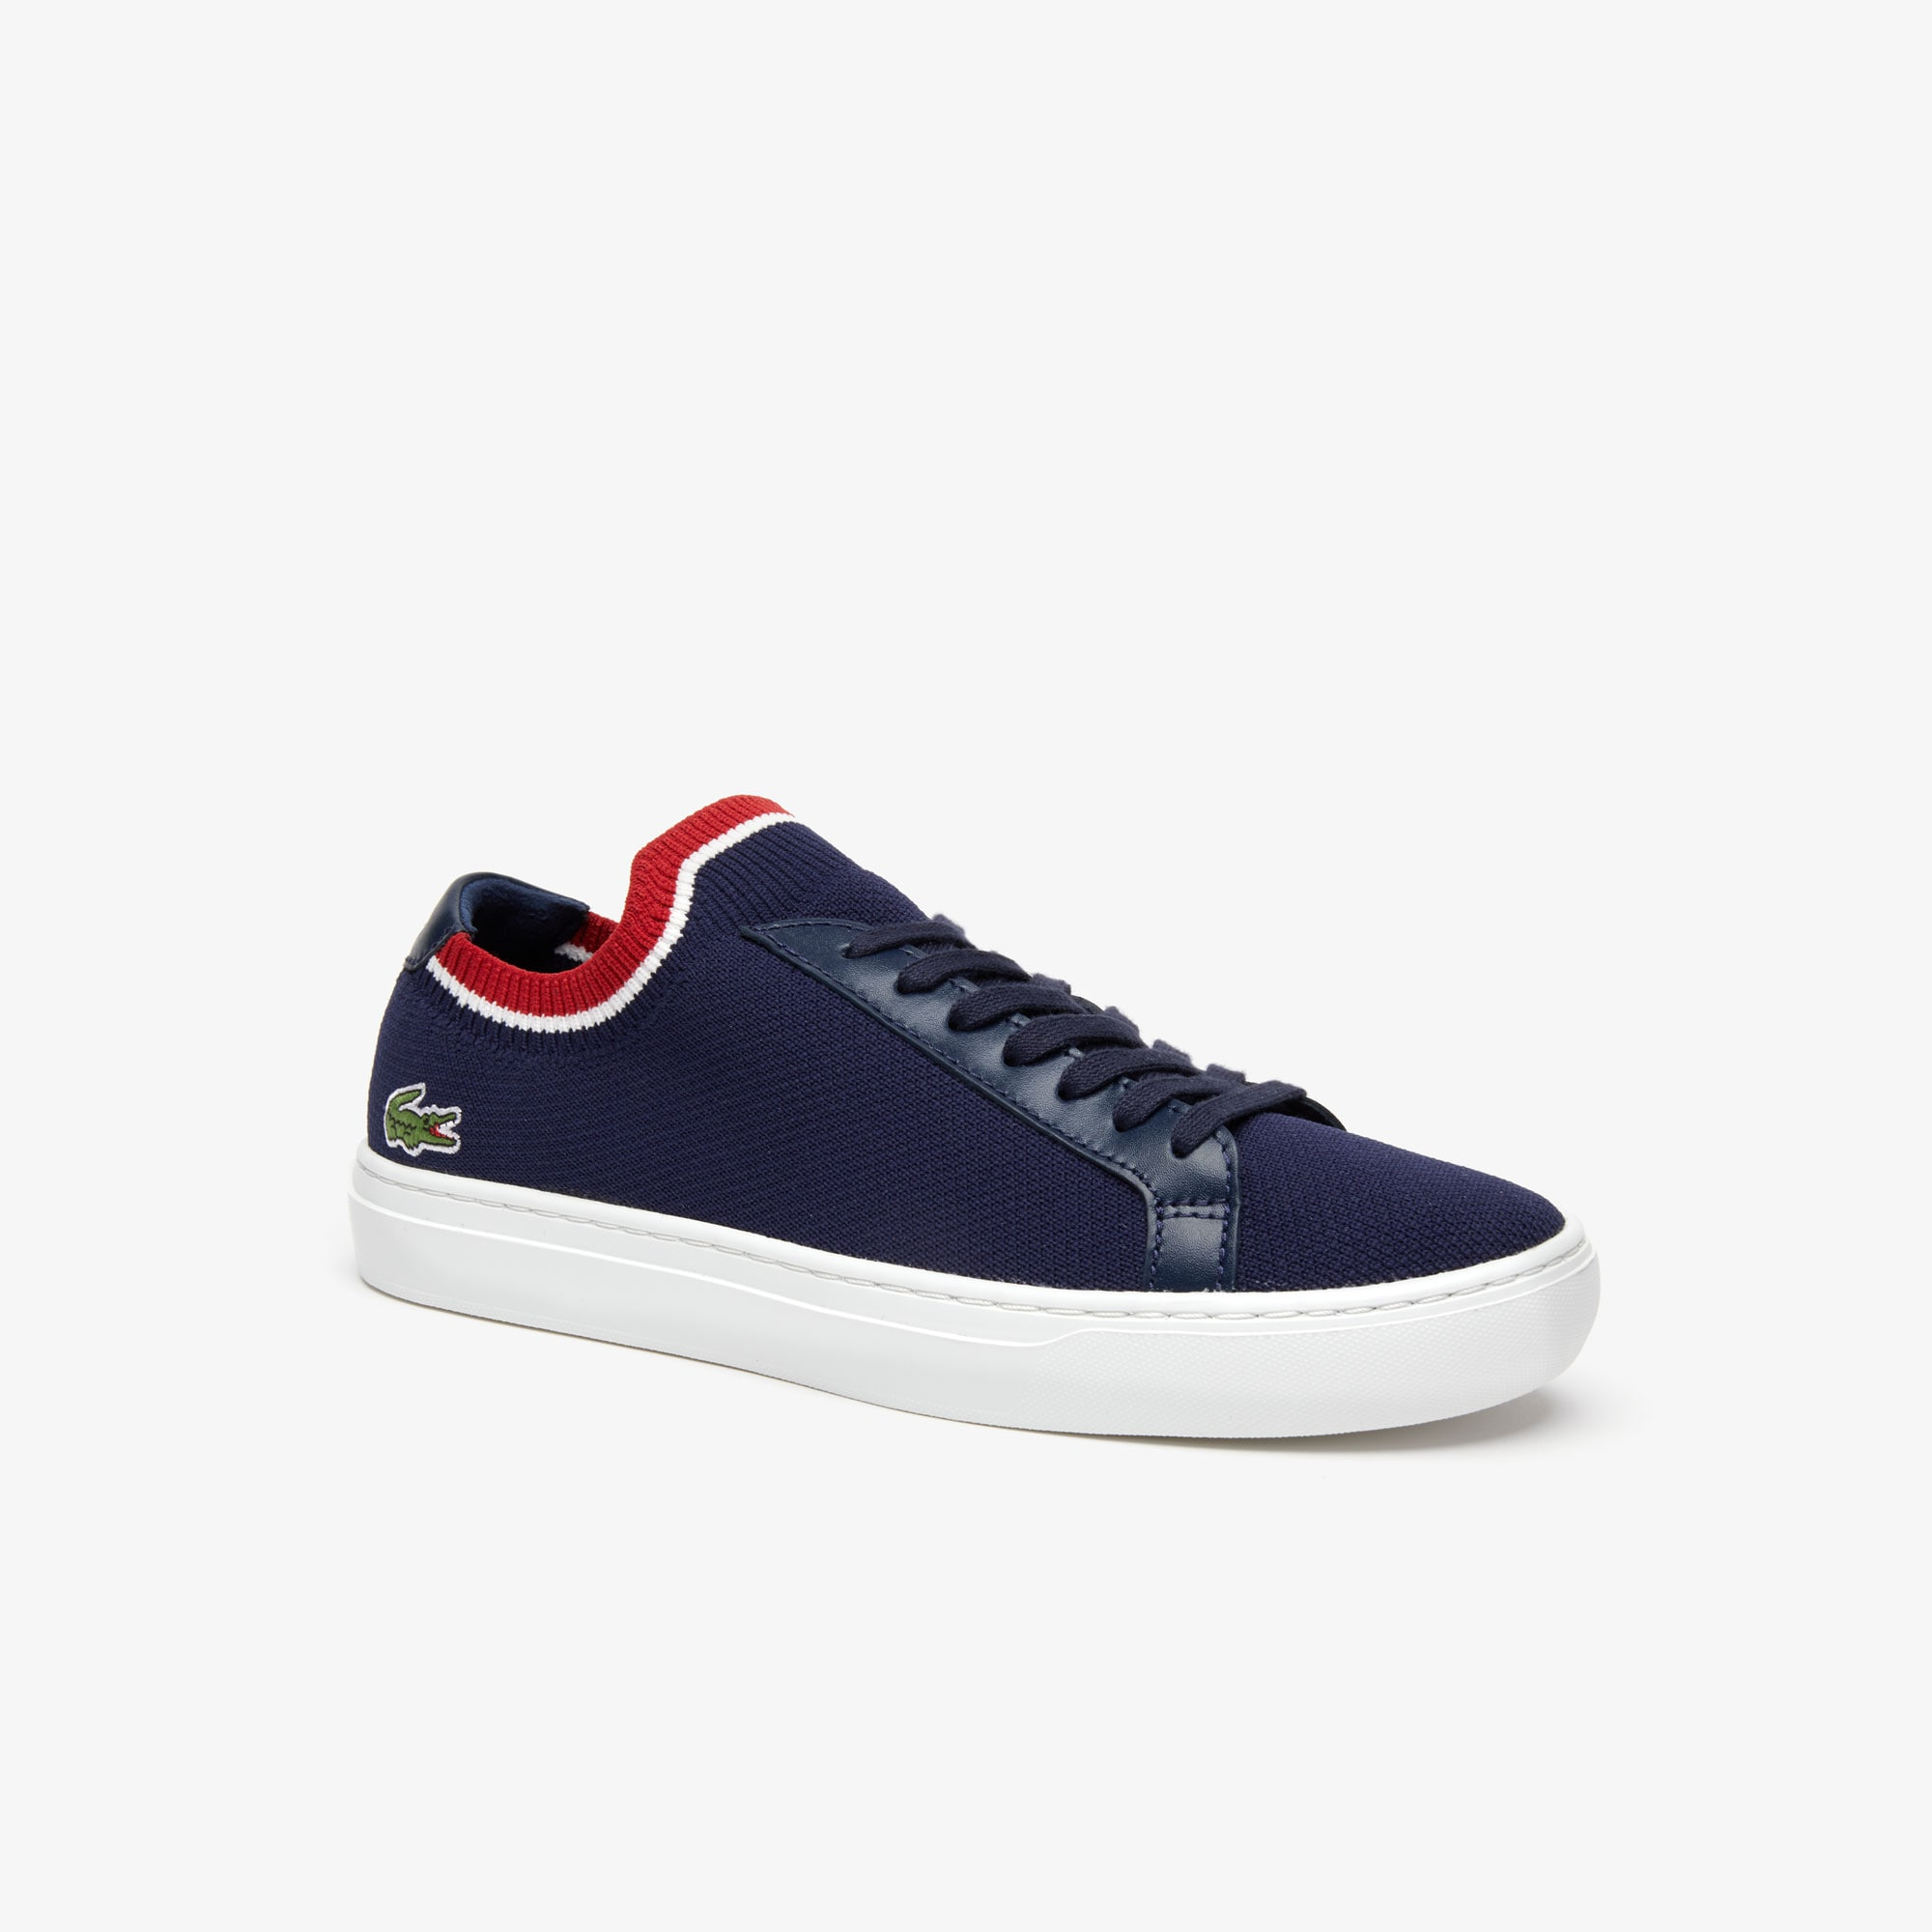 d68abeb0e064 Lacoste shoes for men  Sneakers